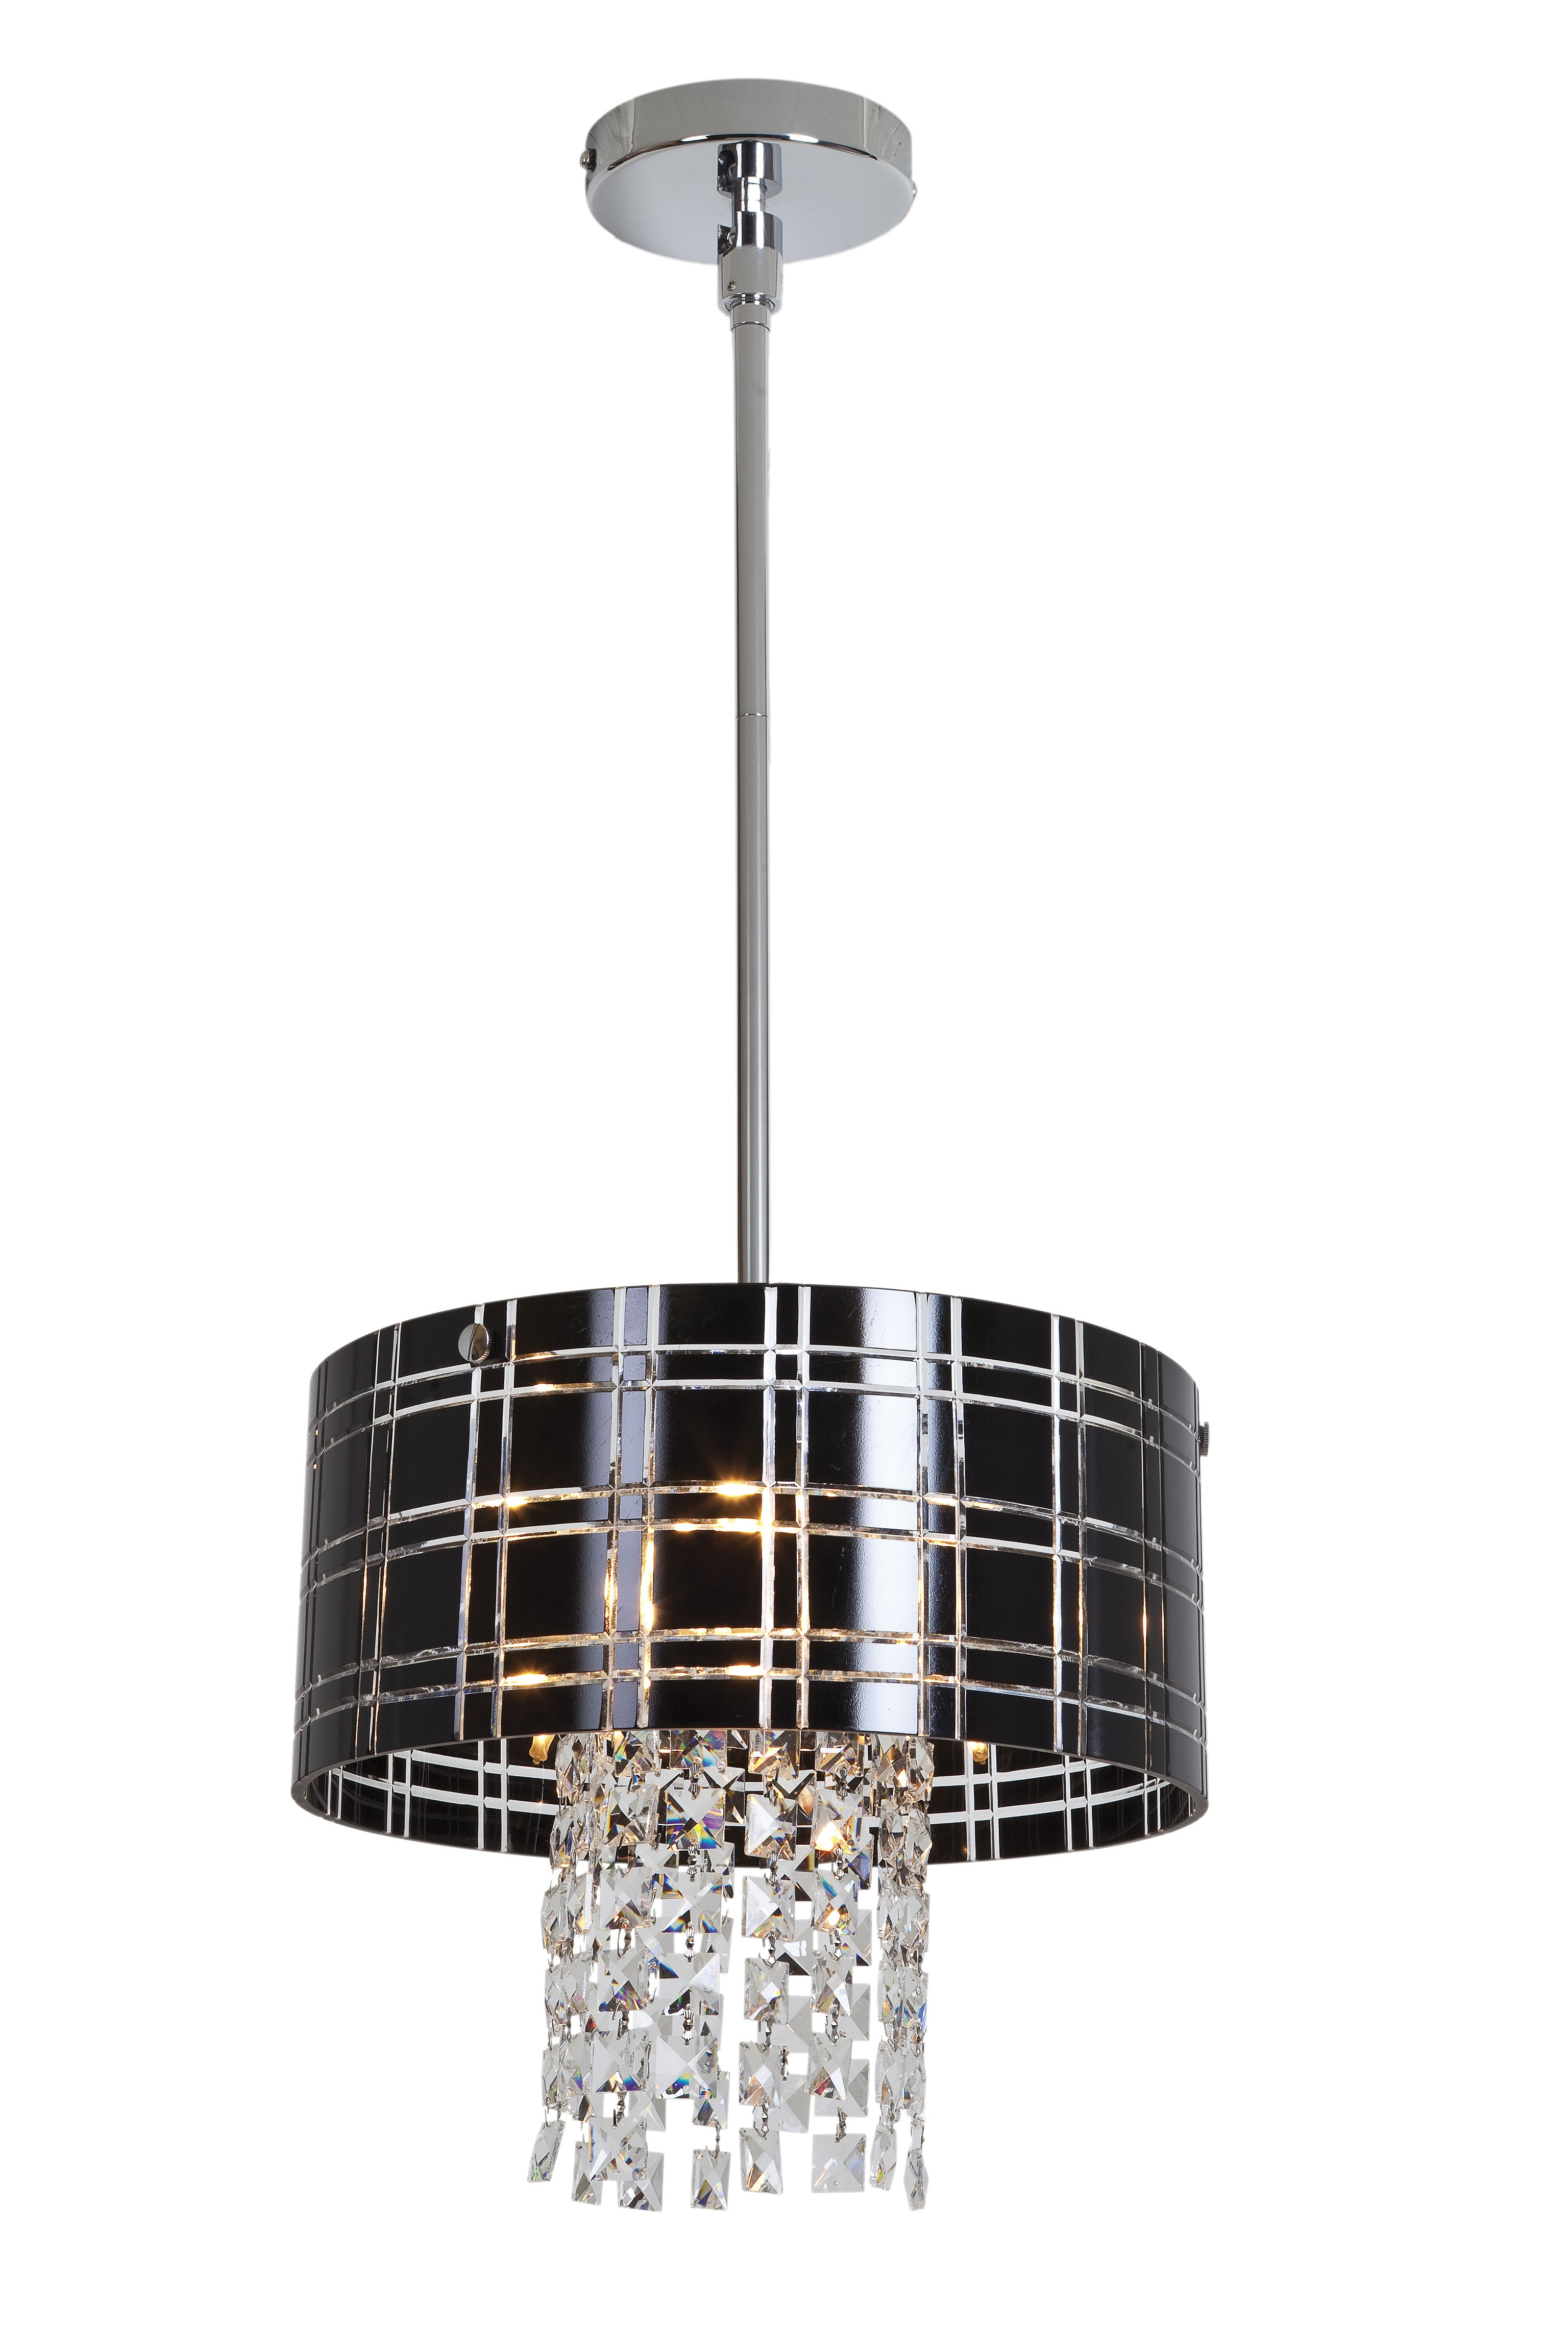 Access Lighting 50972chbl Kalista Cylinder Pendant With. Lauren Conrad Kitchen. Marble Top Dresser. Laundry Room Decor Ideas. The Wooden Duck. Floor Cushion Couch. Foyer Lantern Chandelier. Home Depot Bathroom Lighting. Warm Gray Paint Colors